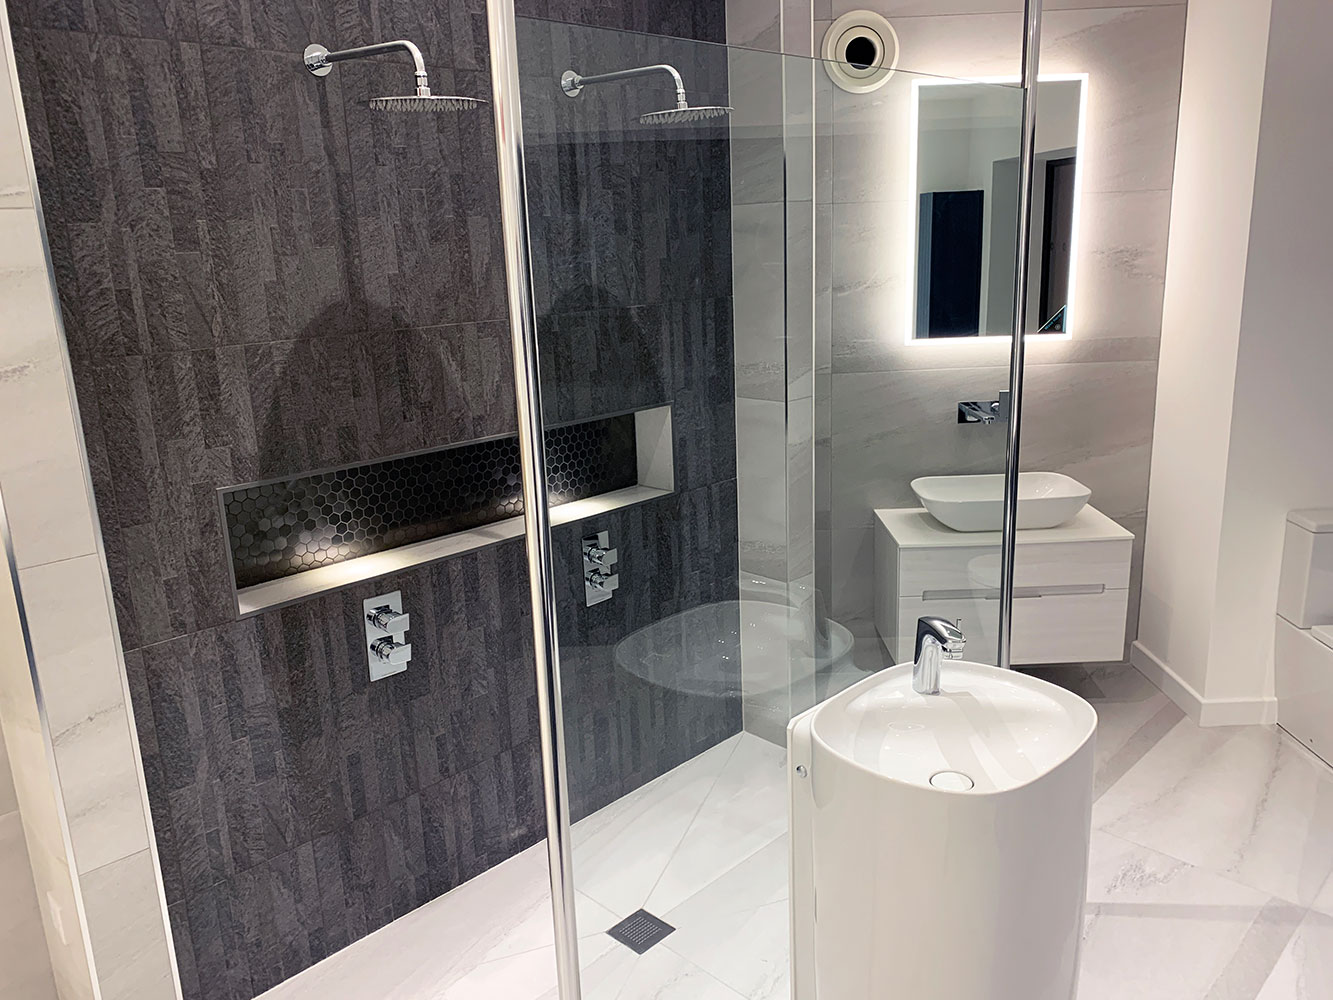 Bathroom Showroom Aberdeen: Bathroom Gallery 6, Photo 2